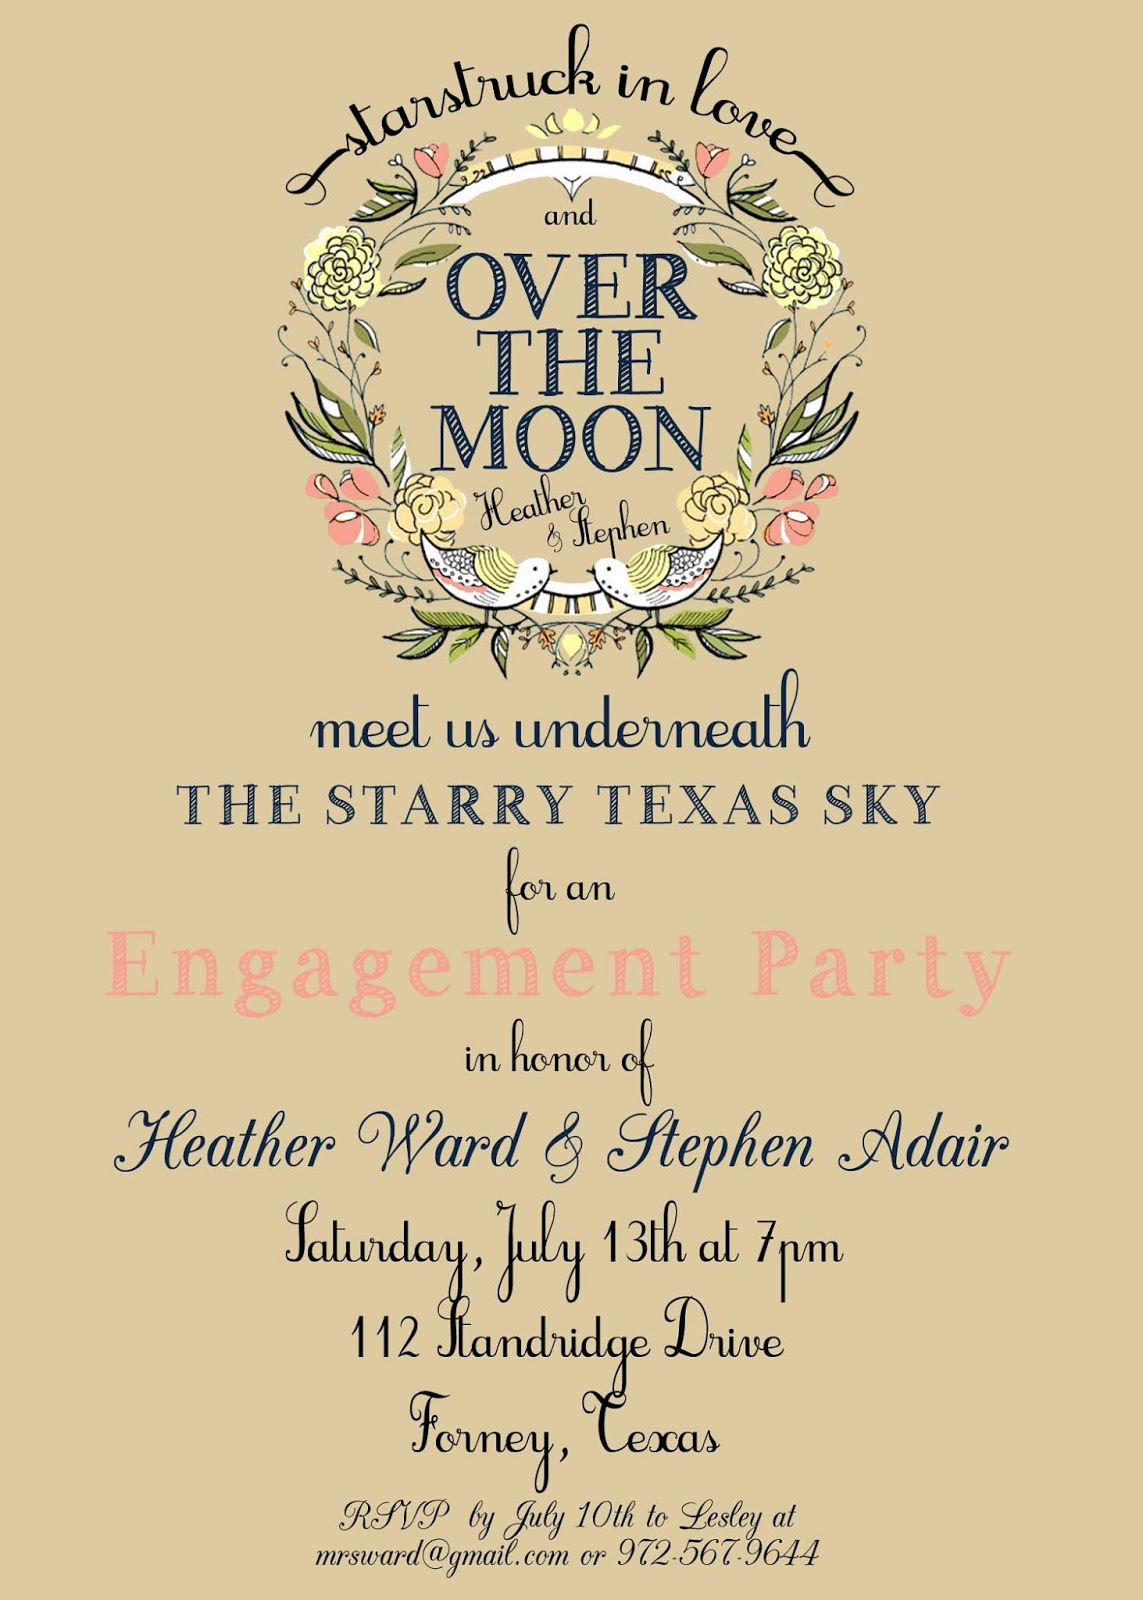 Invitations For Engagement with nice invitations template